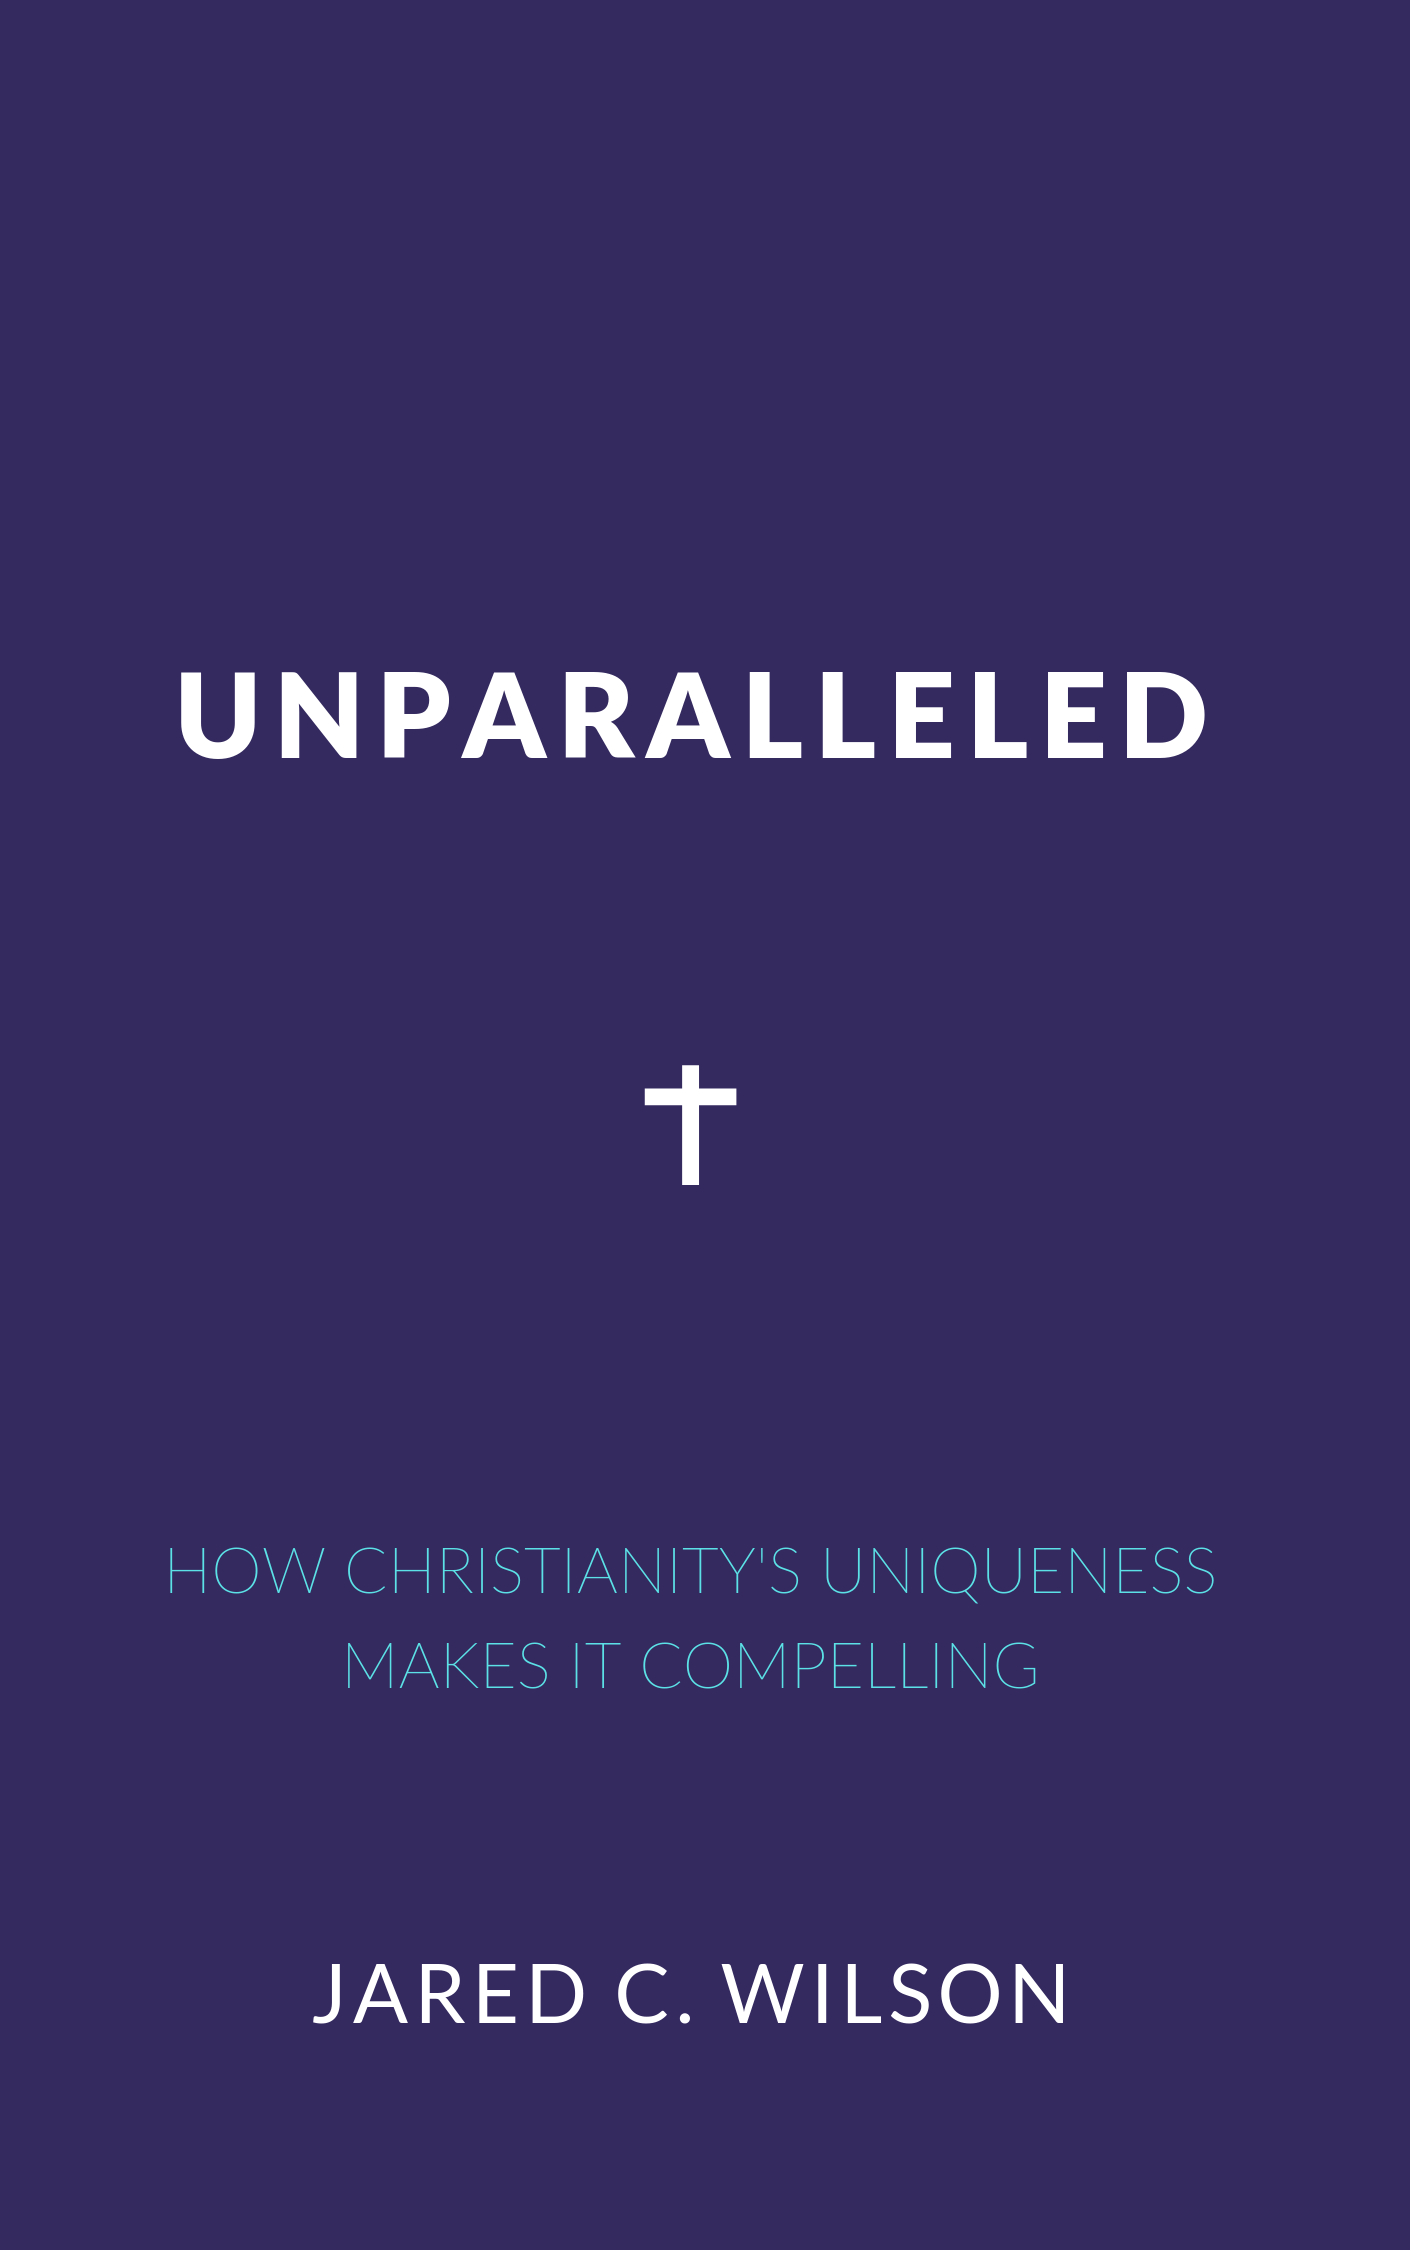 Book Summary of Unparalleled by Jared Wilson